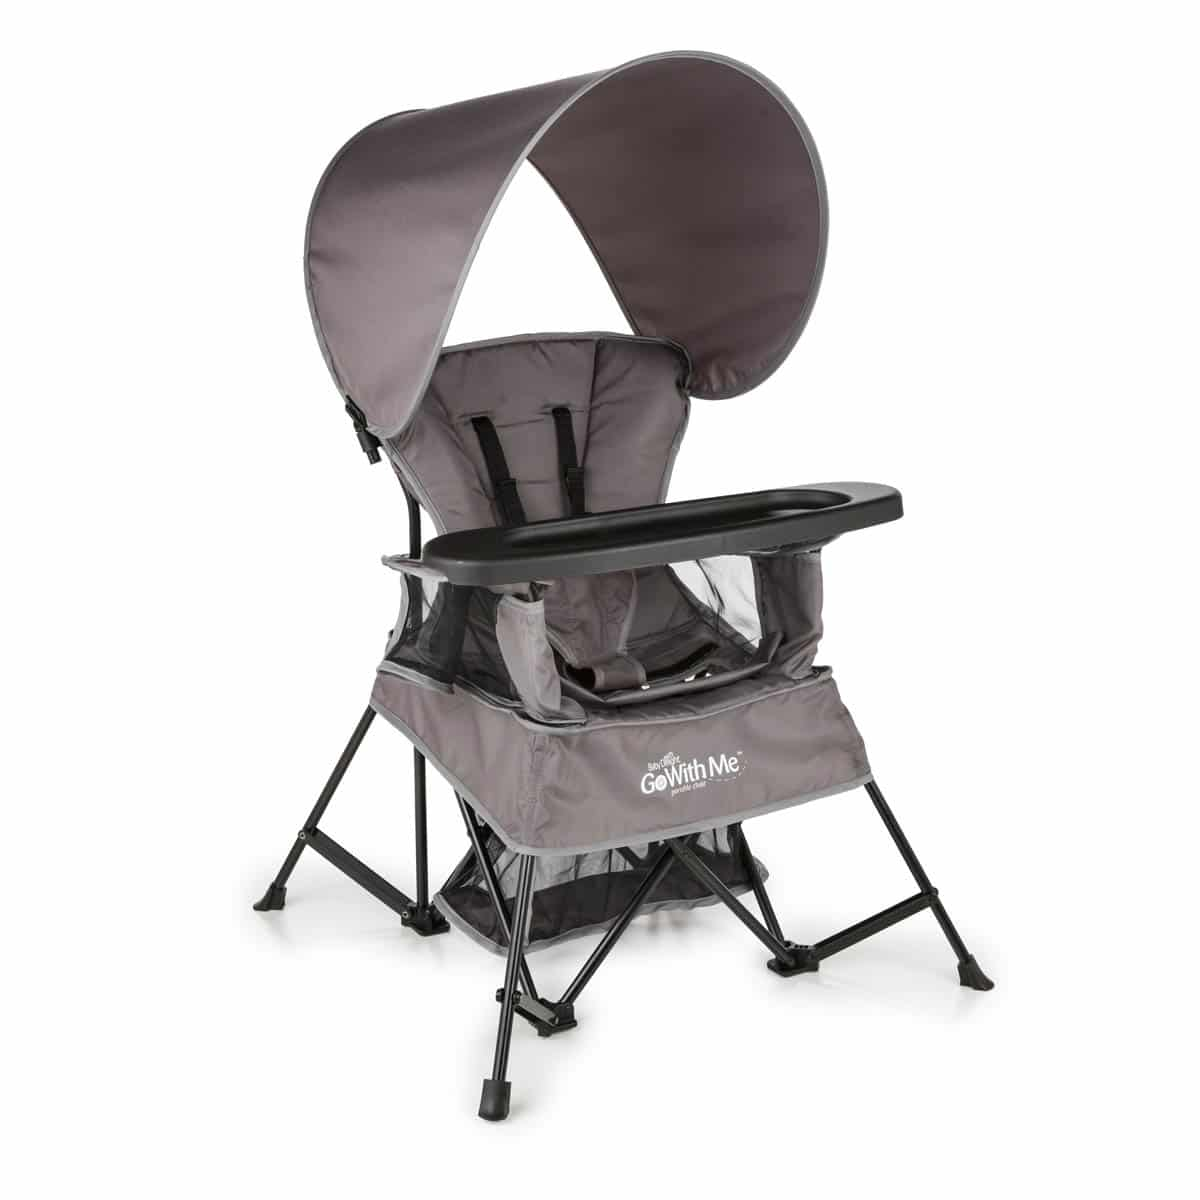 Fold Up Chair With Canopy Go With Me Chair Gray